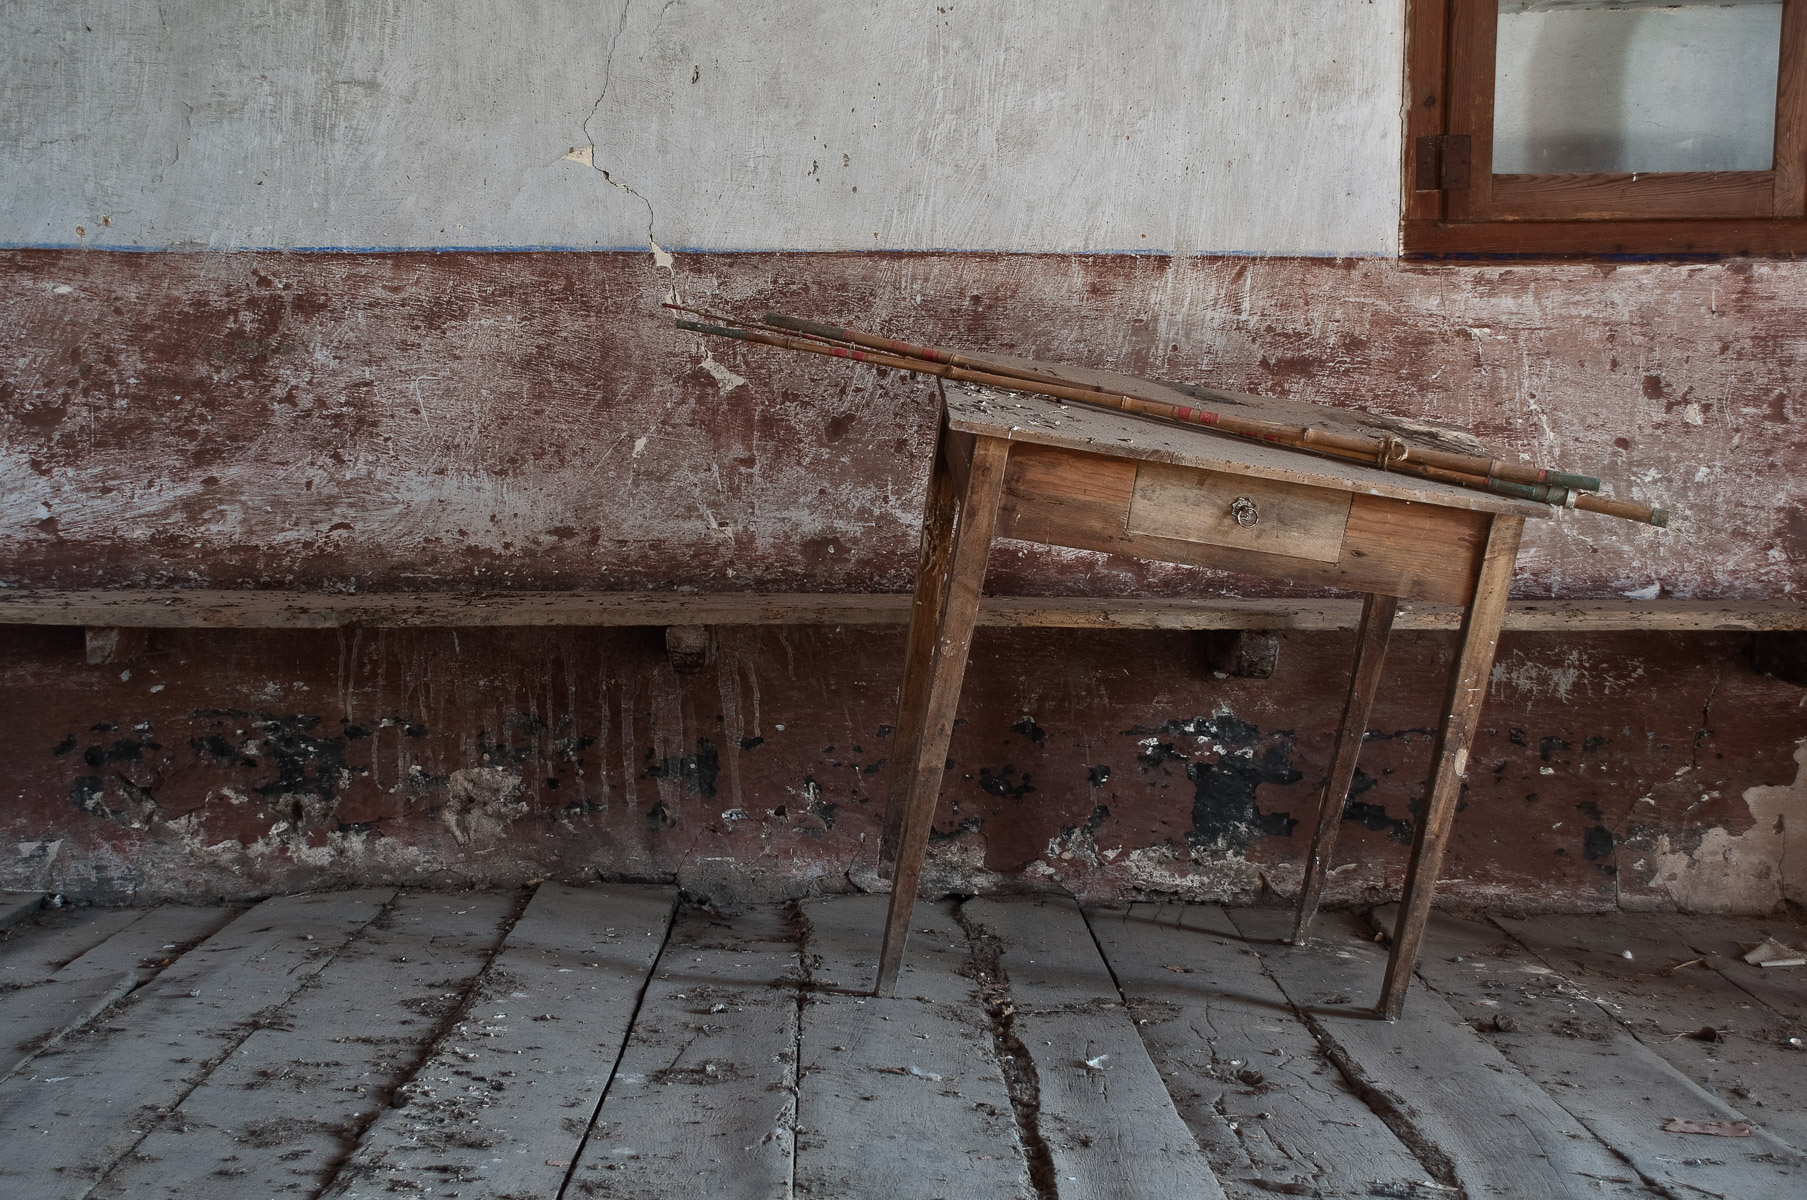 abandoned-places-in-europe-alicia-rius-photography-95.jpg